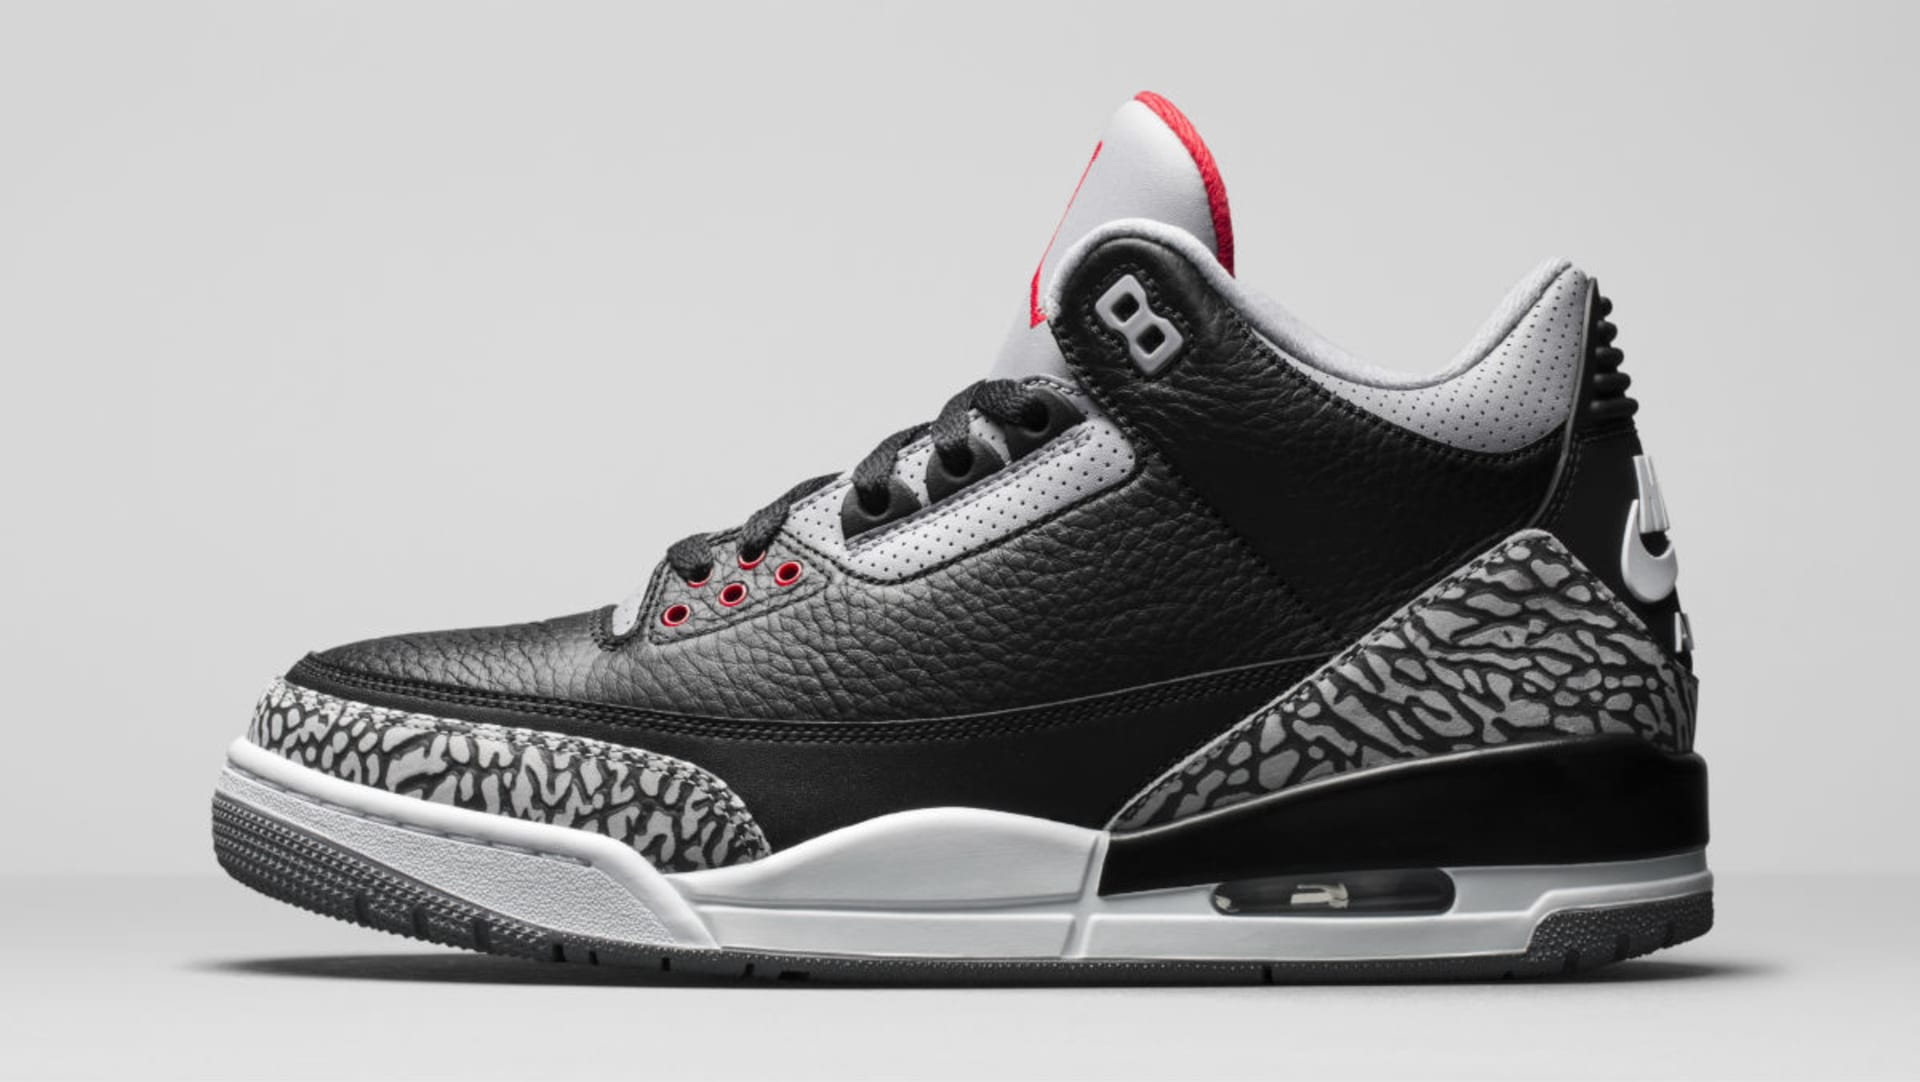 a69f254b09f Air Jordan 3 III Black Cement Release Date 854262-001 Profile